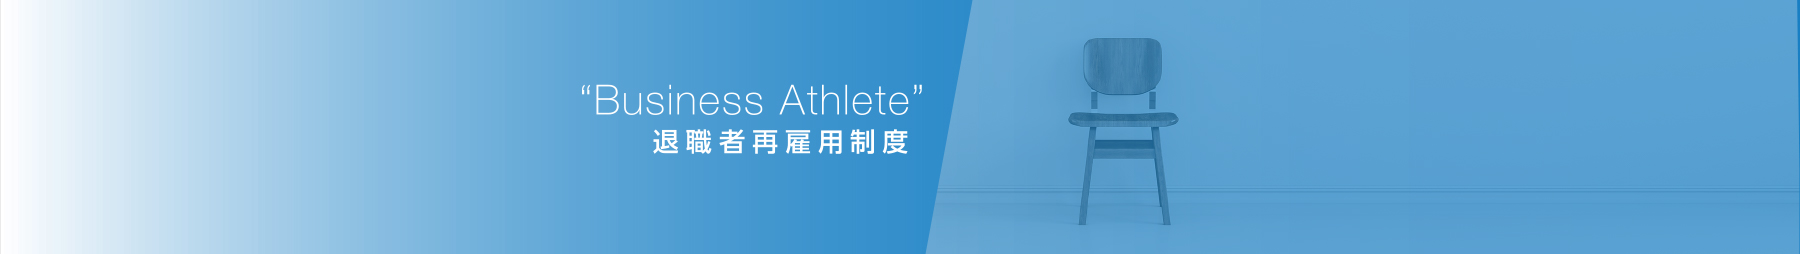 """Business Athlete""退職者再雇用制度"